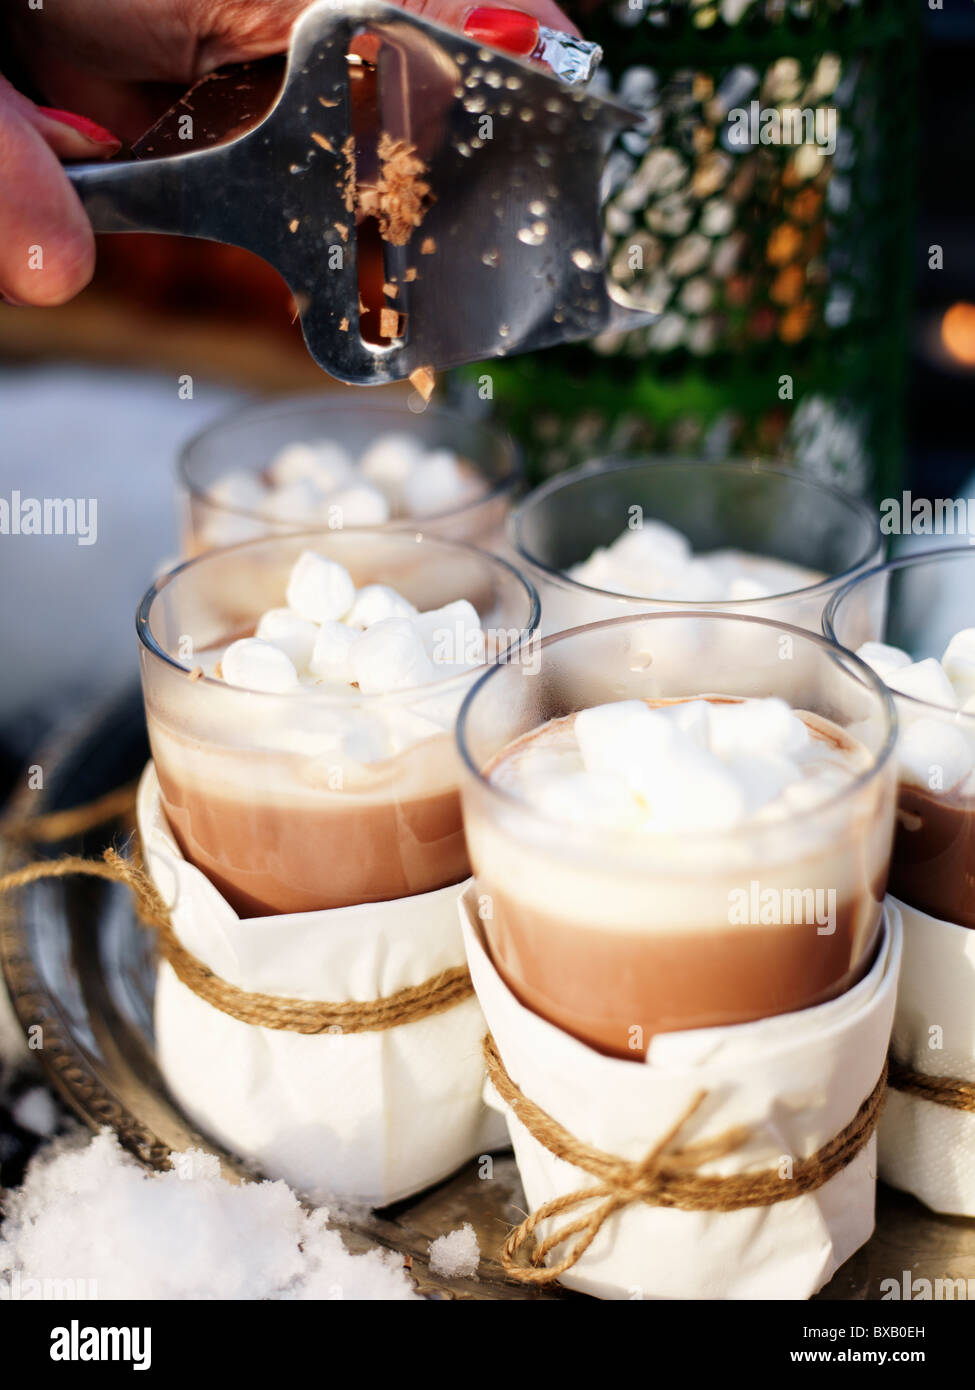 Glasses of hot chocolate, close-up Stock Photo